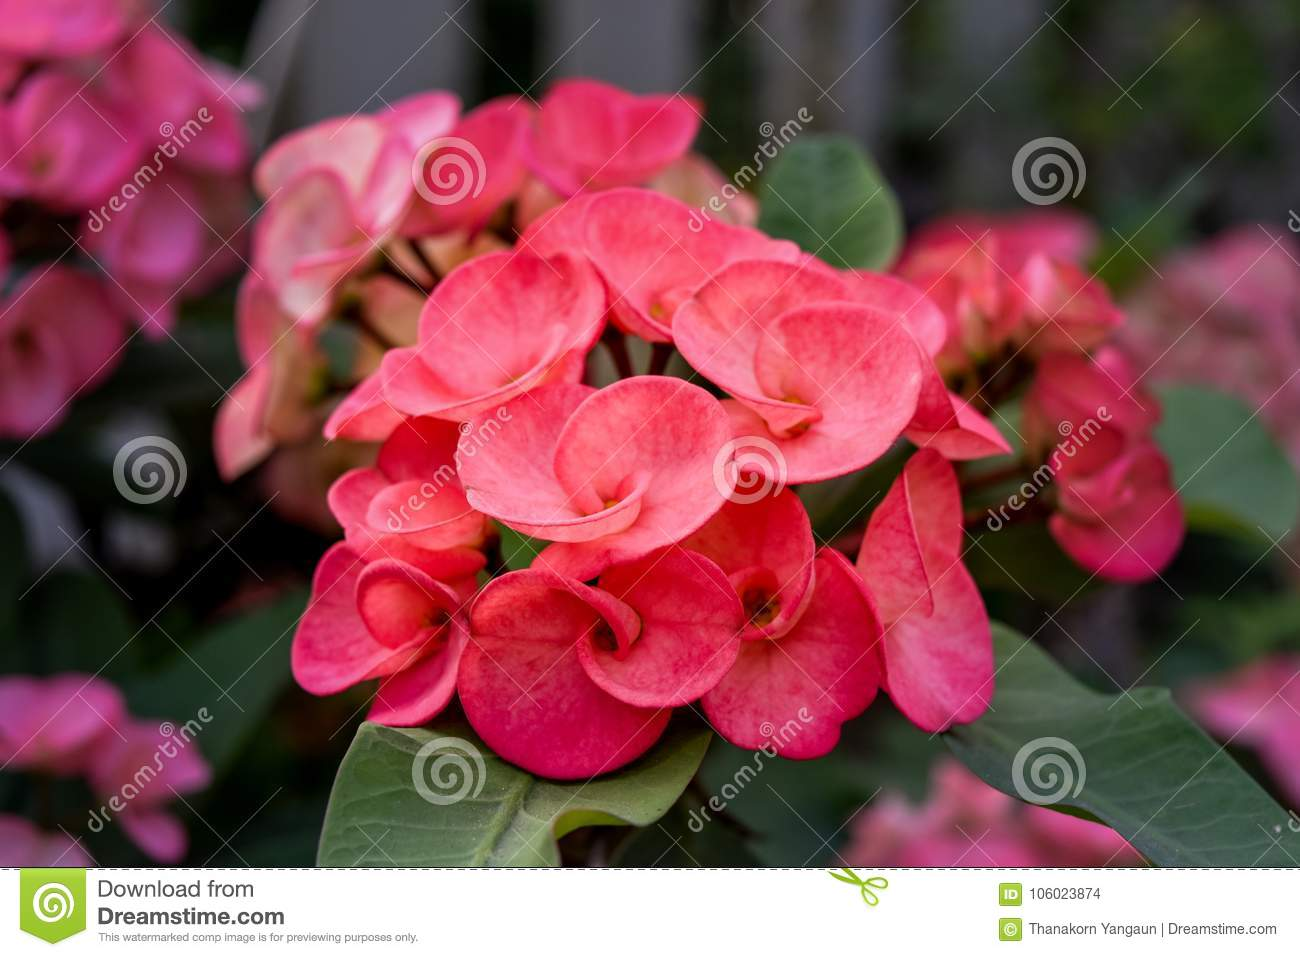 Crown of thorns flowers stock photo image of tree 106023874 the beautiful pink flower crown of thorns flower in the garden look fresh mightylinksfo